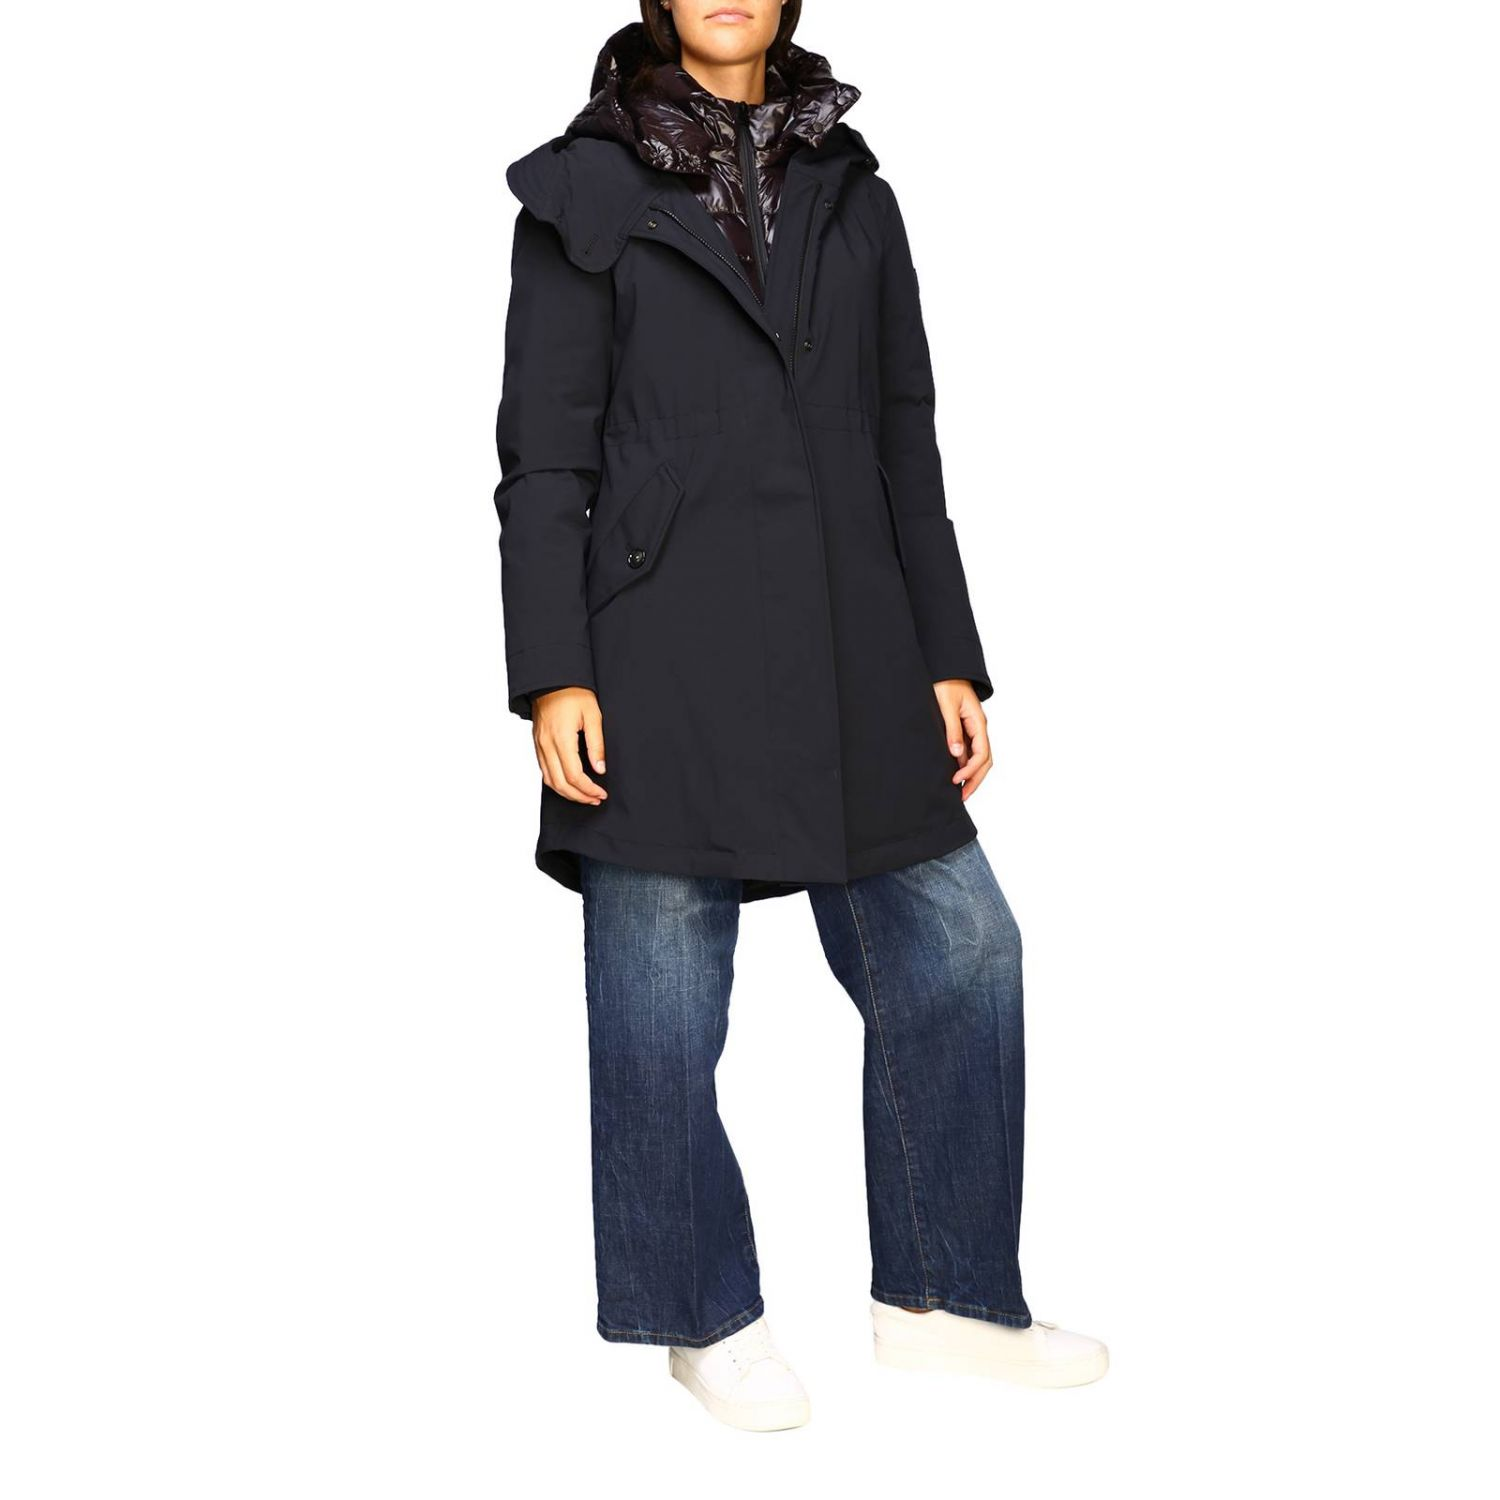 Giacca donna Woolrich nero 2